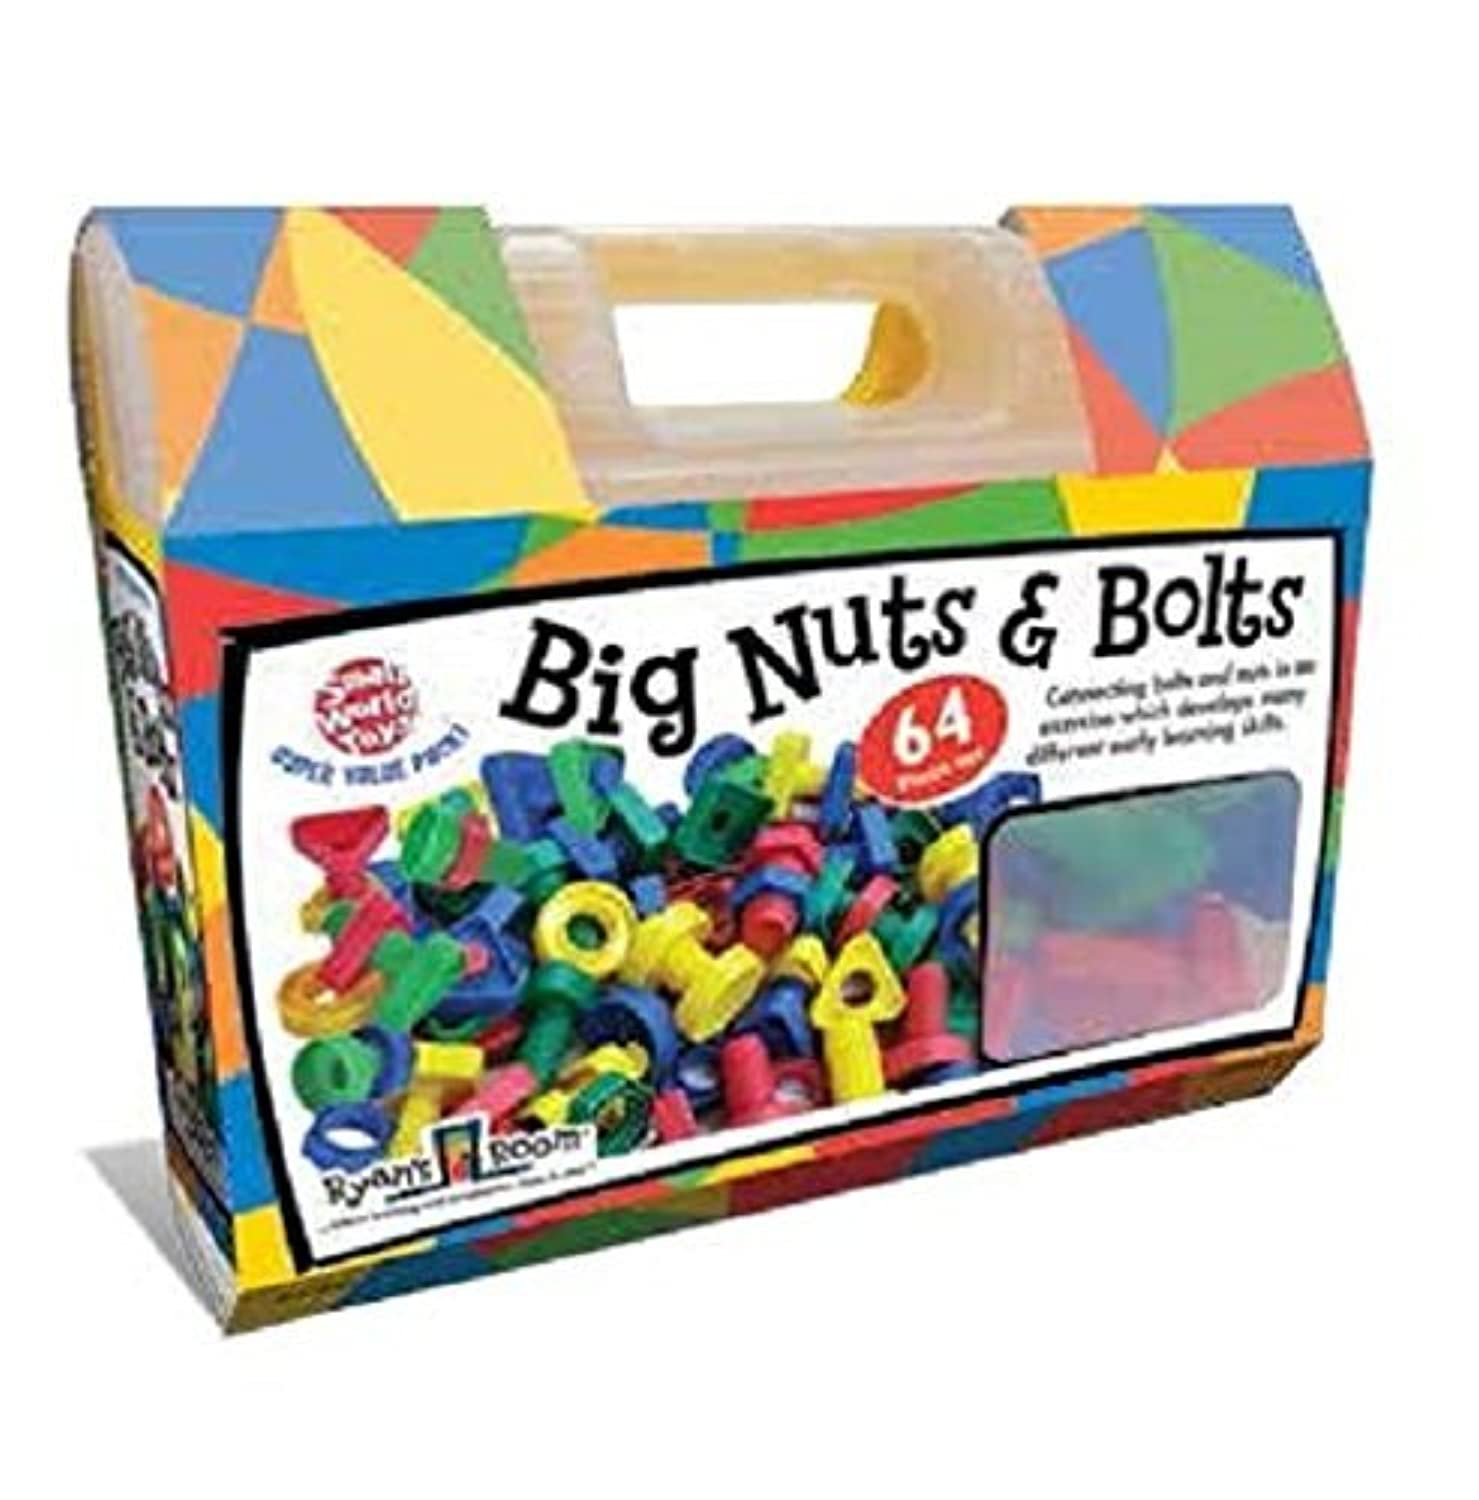 Small World Toys Ryan's Room Educational - Big Nuts and Bolts (64-Piece) [並行輸入品]